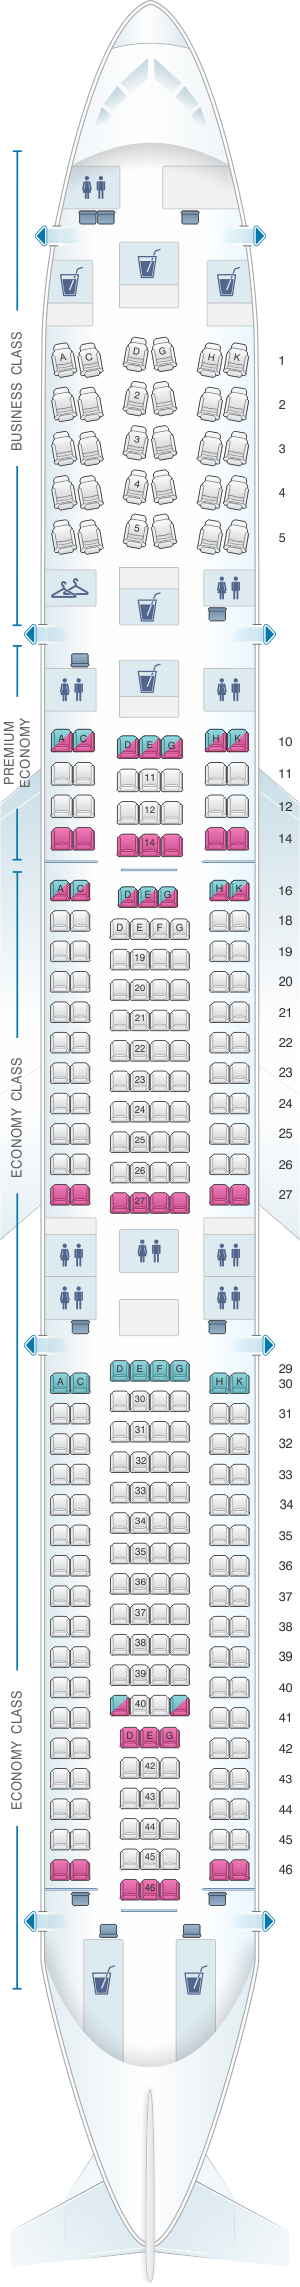 Seat Map For Lufthansa Airbus A340 300 279pax